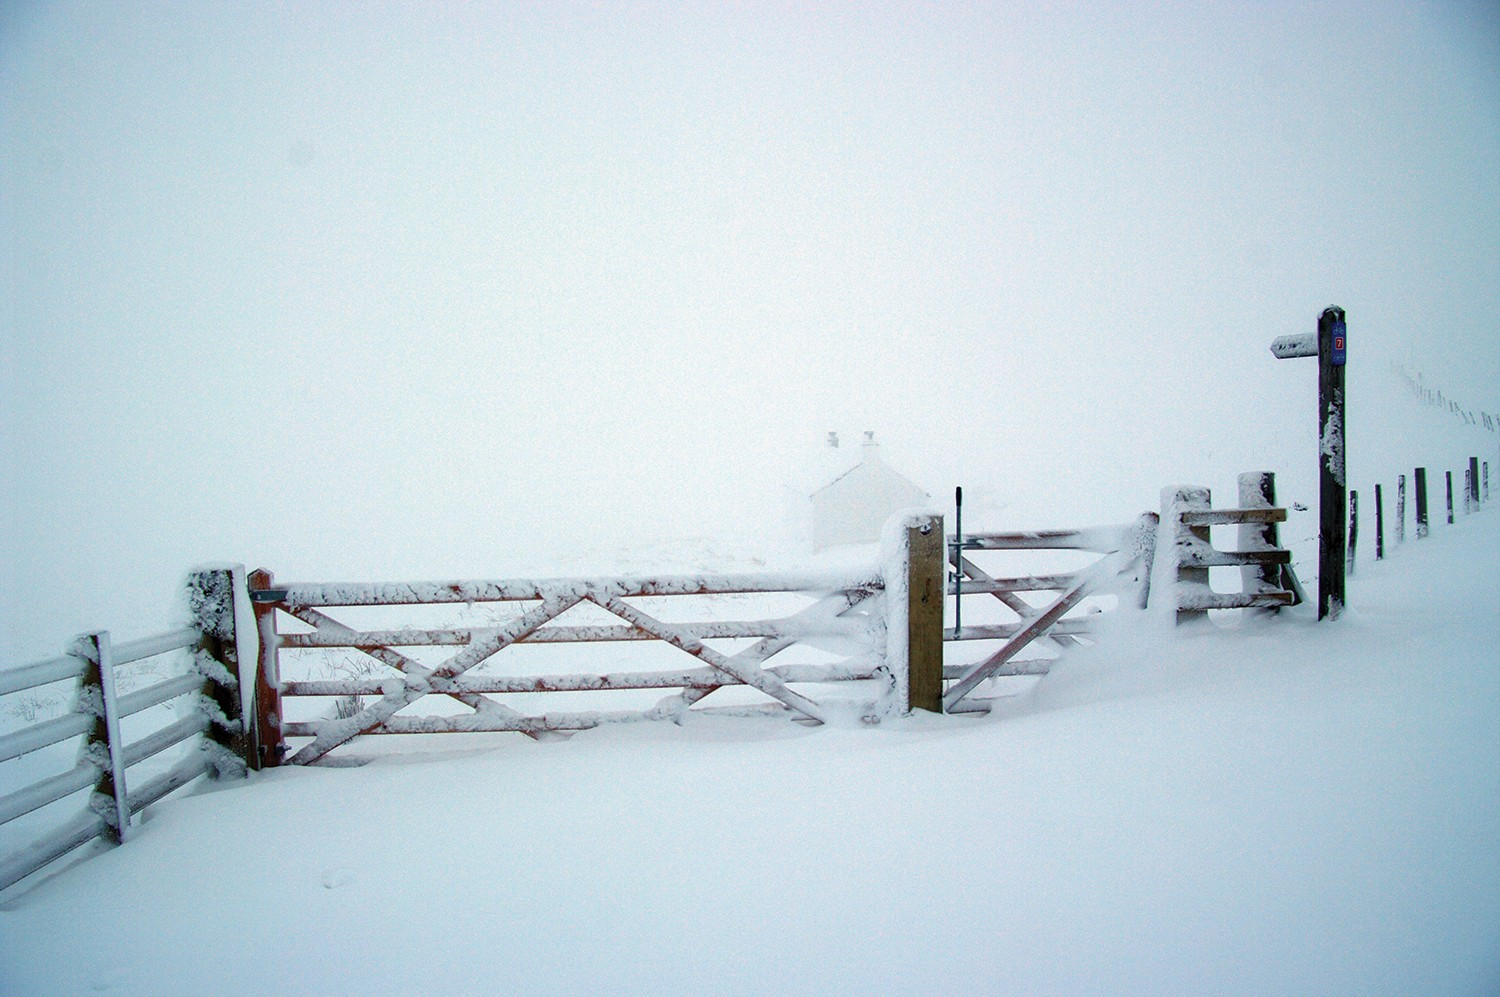 A barn gate covered in snow.